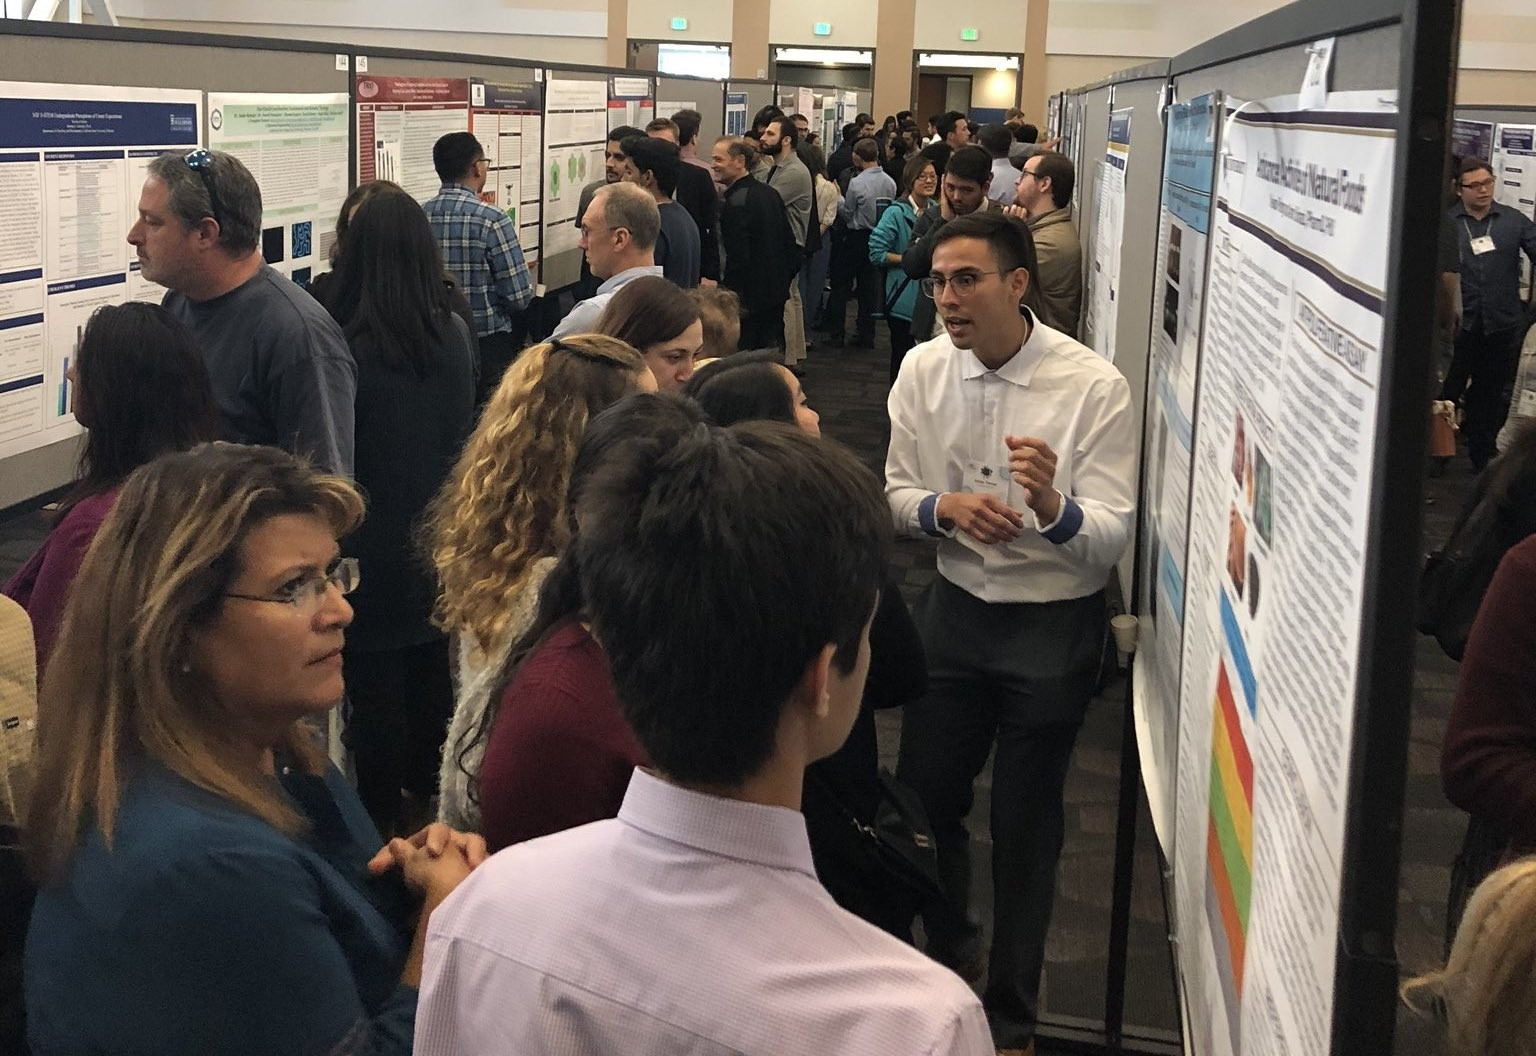 The Southern California Conferences for Undergraduate Research was held at CSUSM on Nov. 23, the first time the annual event had ever been held in San Diego County. A conference-record 1,363 participants from 150 different institutions attended.